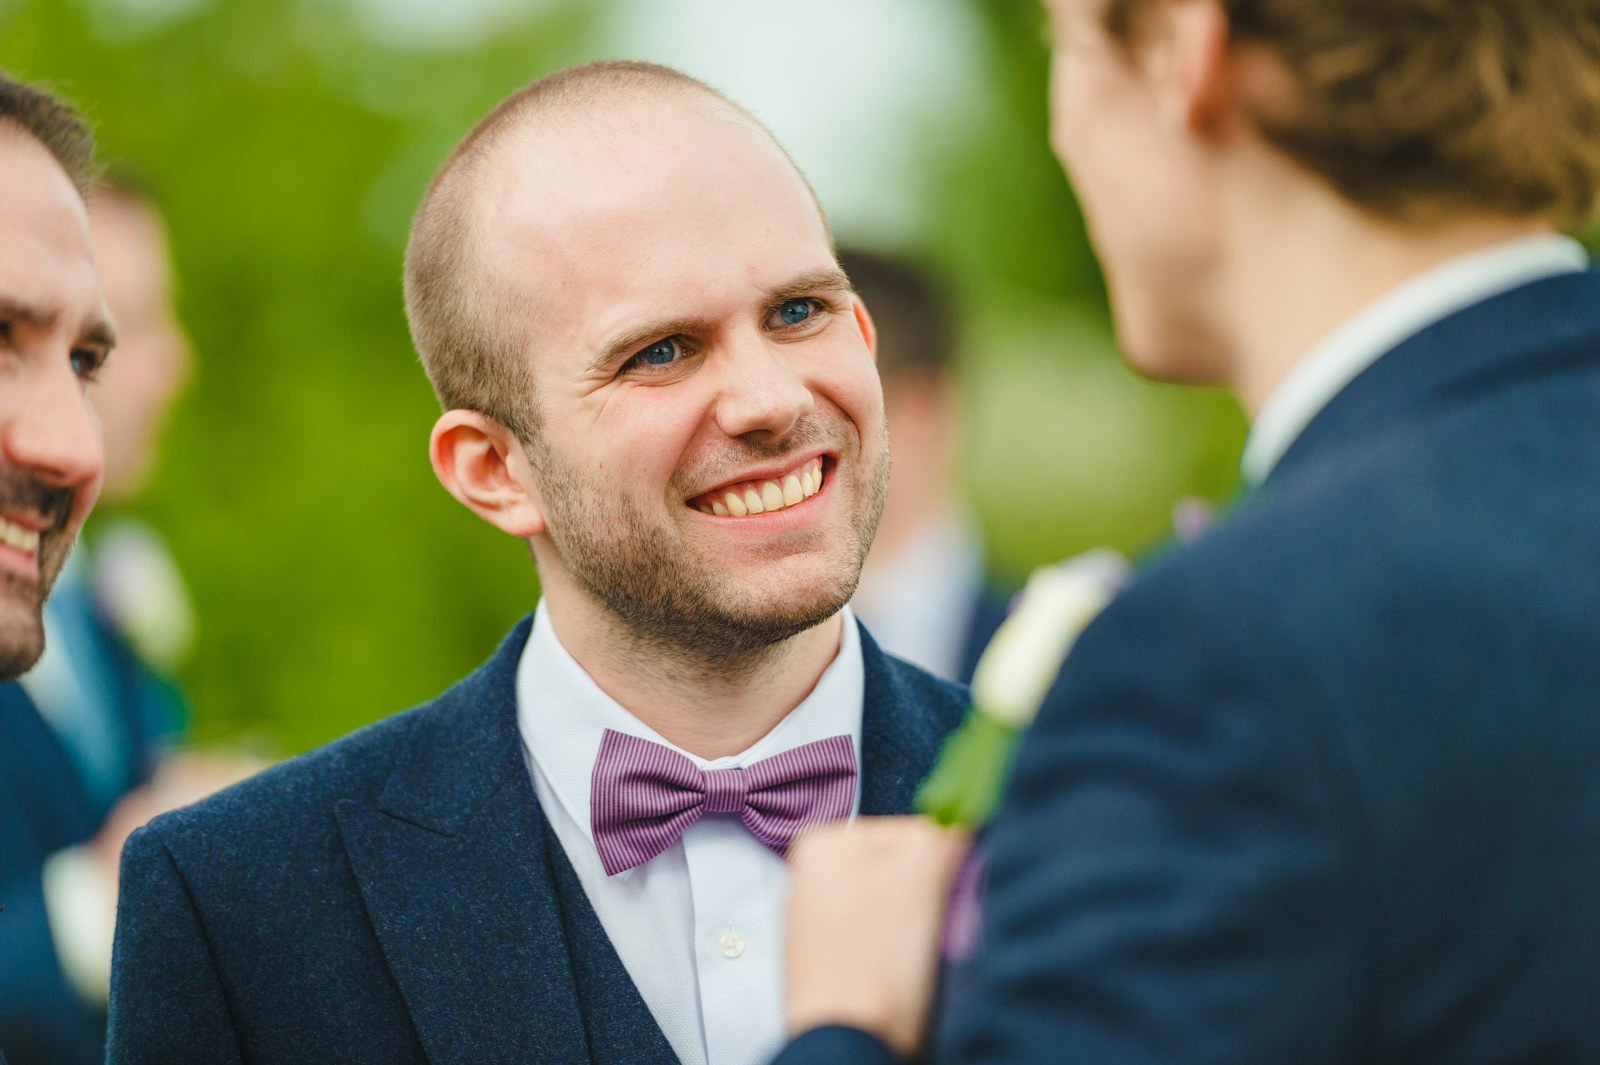 millers of netley wedding 70 - Millers Of Netley wedding, Dorrington, Shrewsbury | Emma + Ben